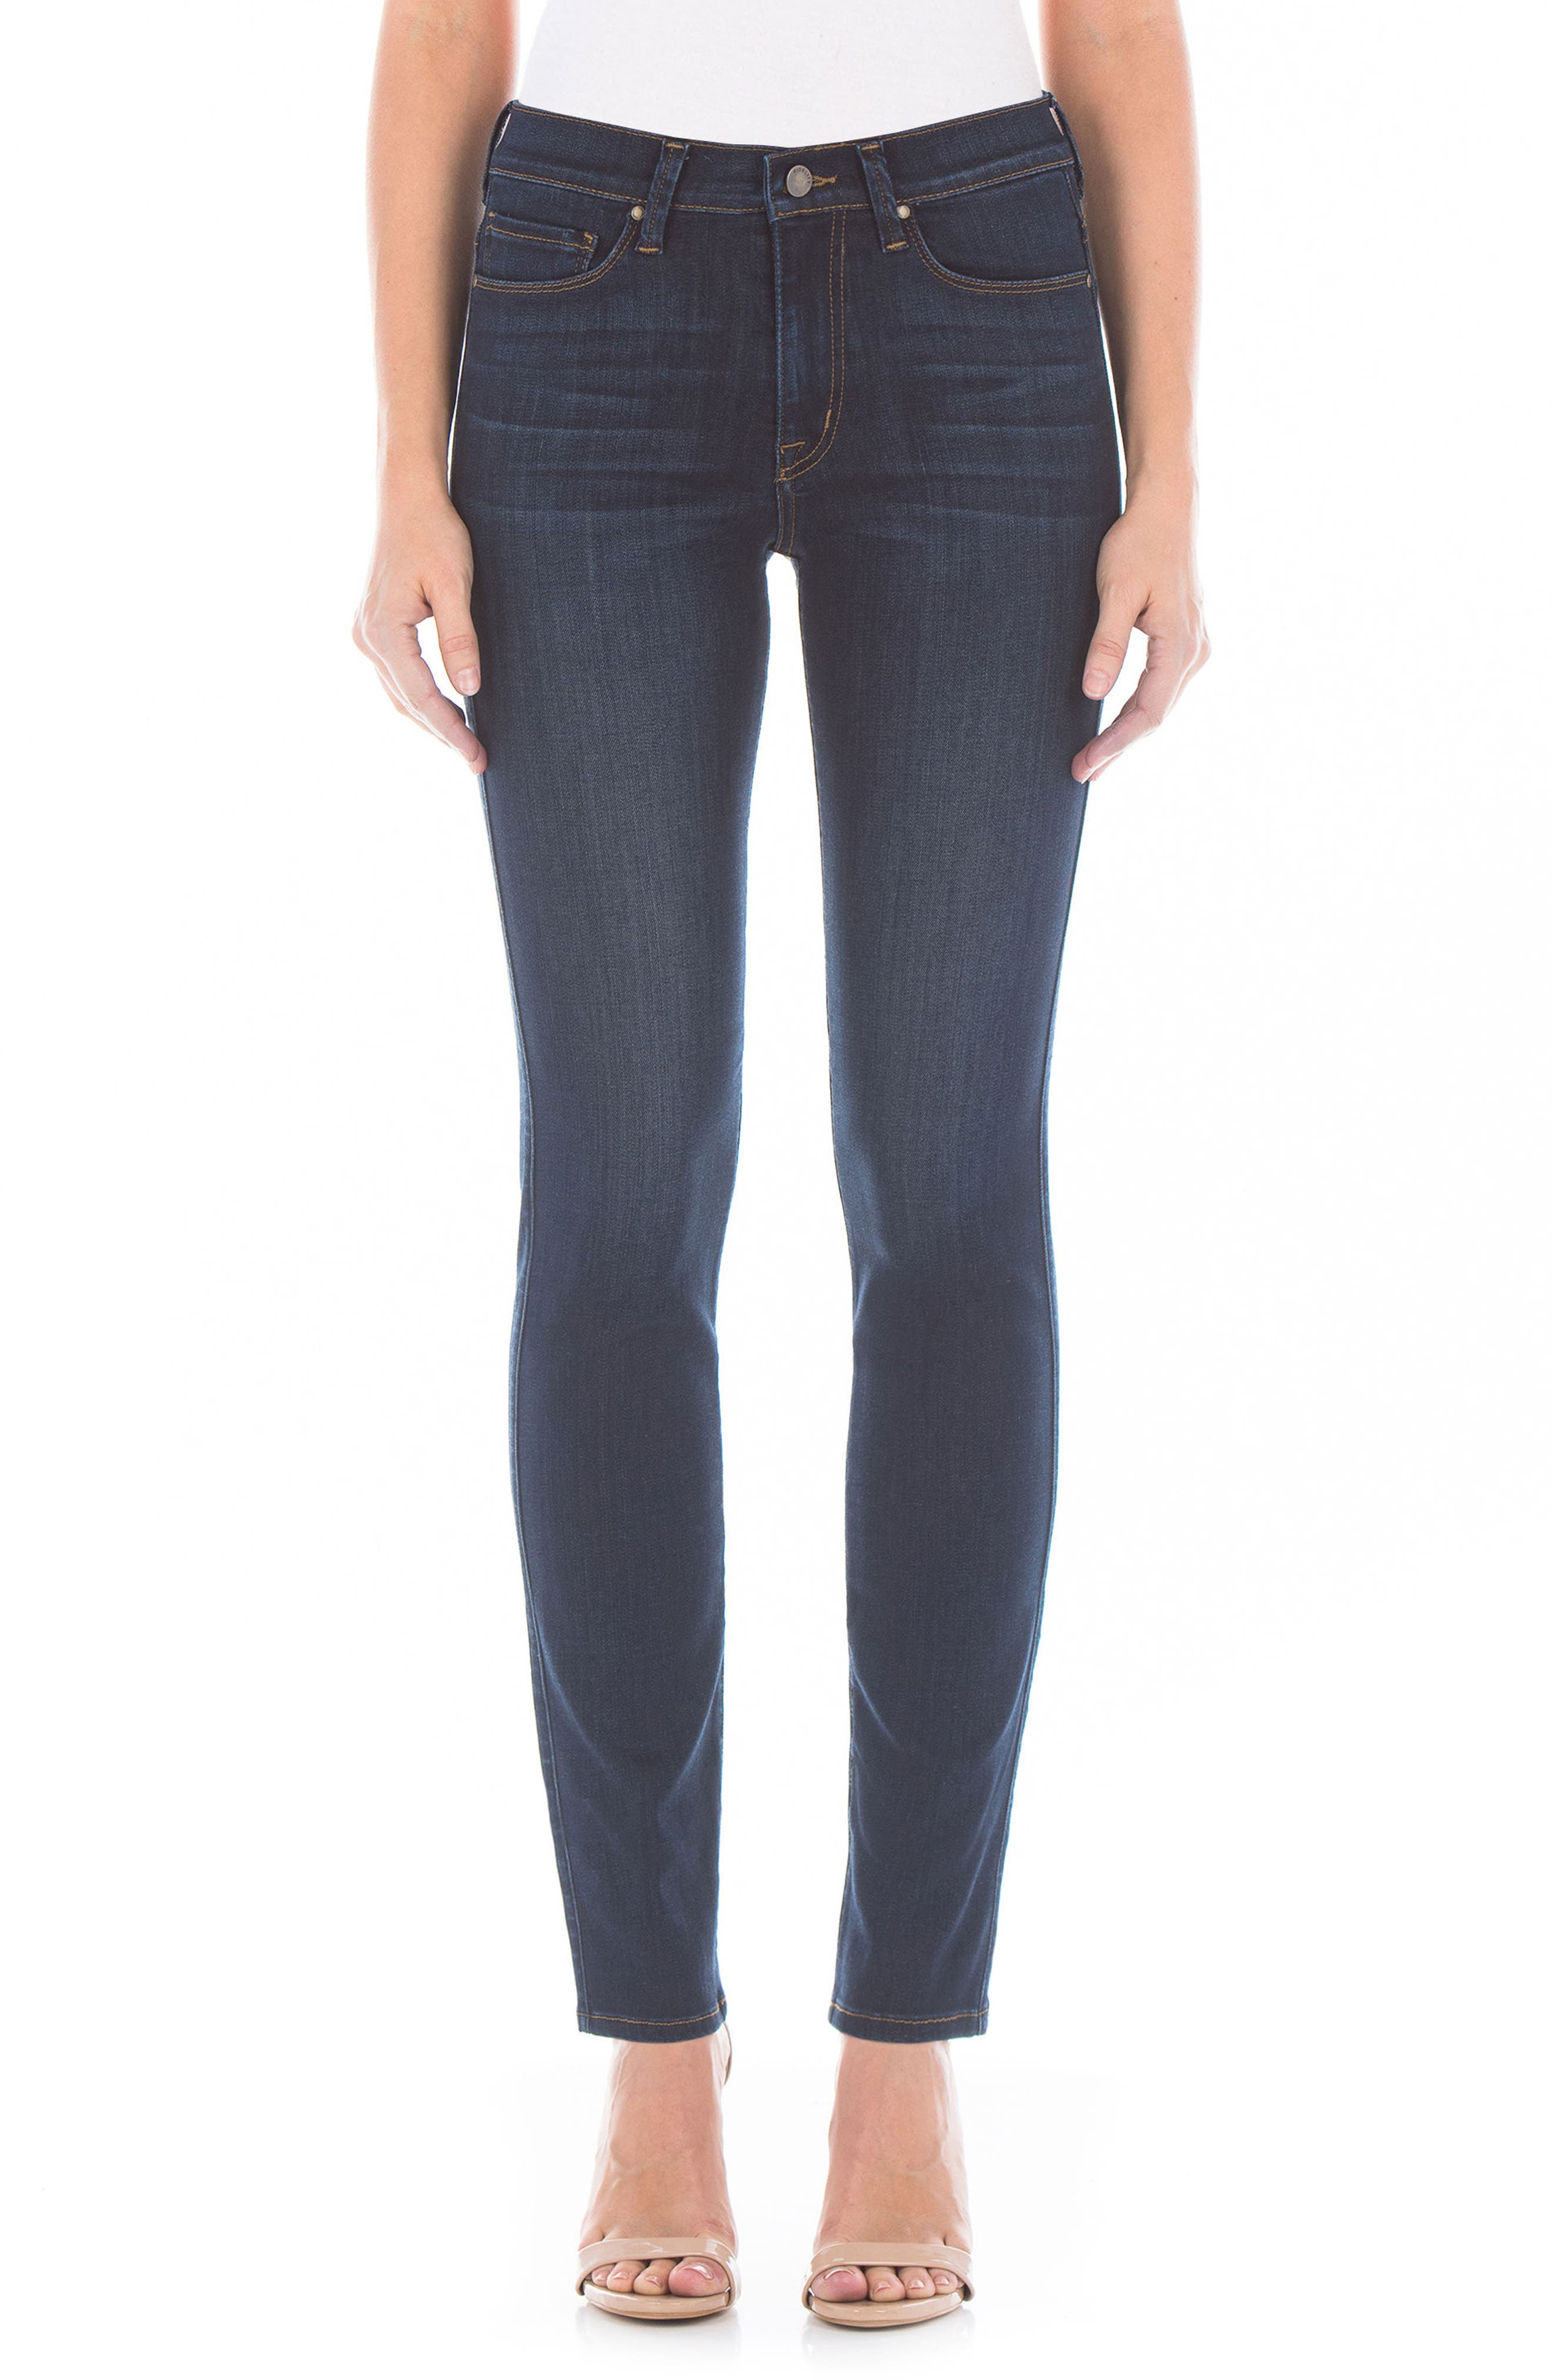 Cher High Waist Slim Jeans,                             Main thumbnail 1, color,                             Bali Blue